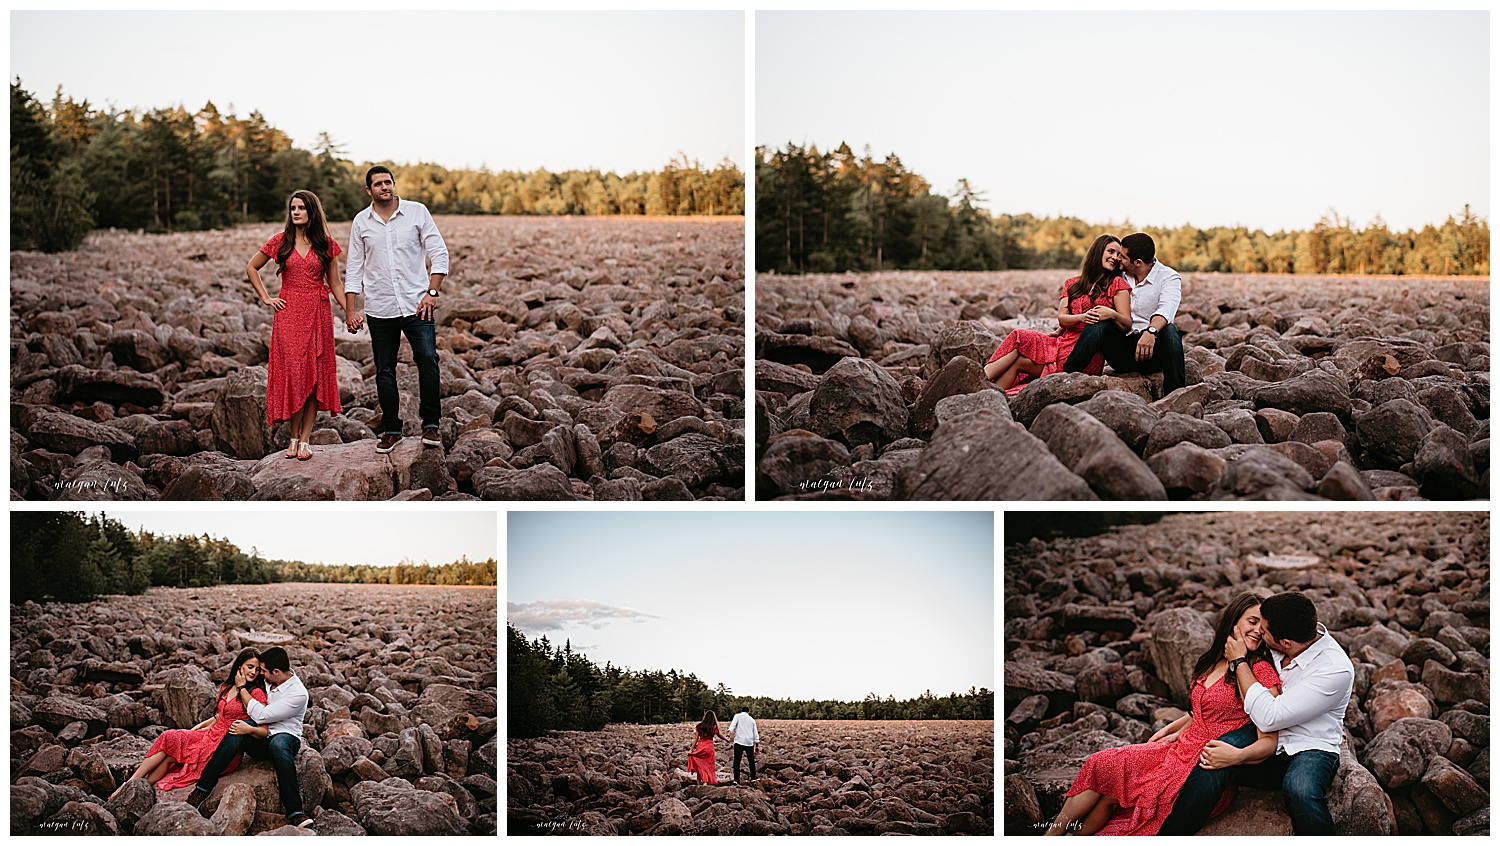 NEPA-Mount-Pocono-Lehigh-Valley-Wedding-Engagement-photographer-at-Hickory-Run-State-Park-Whitehaven-PA_0021.jpg